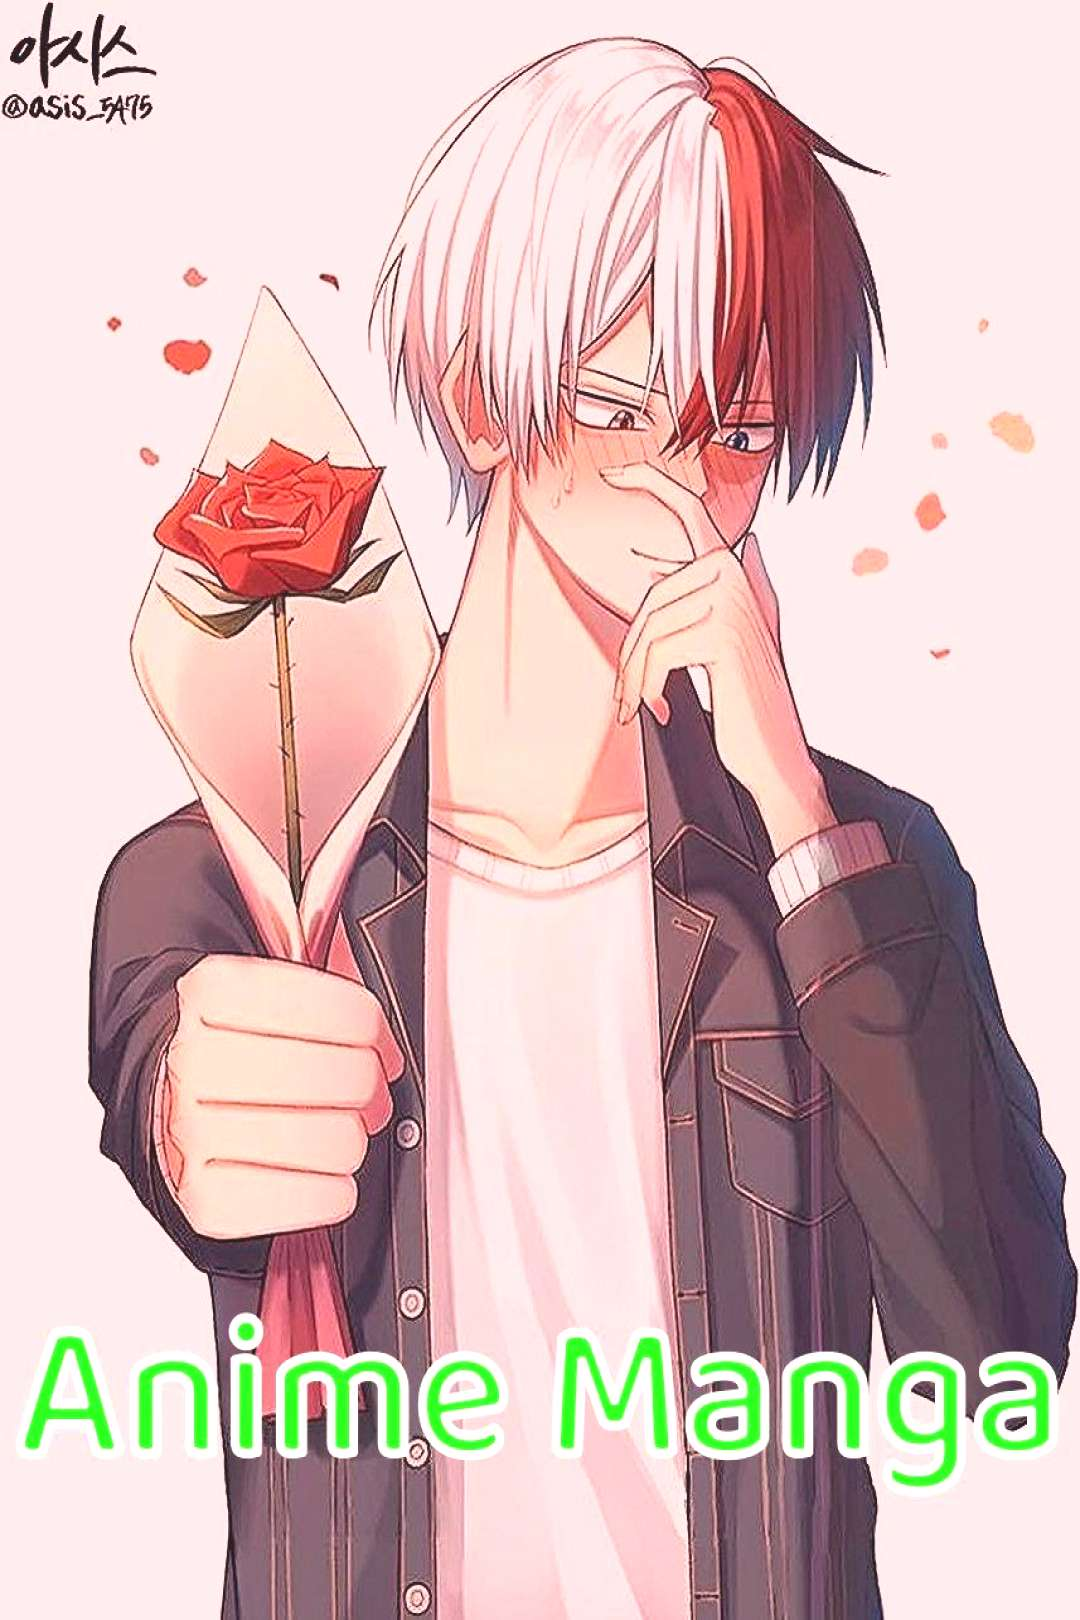 Anime Manga Happy Valentine's Day! Who will you be spending today with? Credit to @asis_5A75